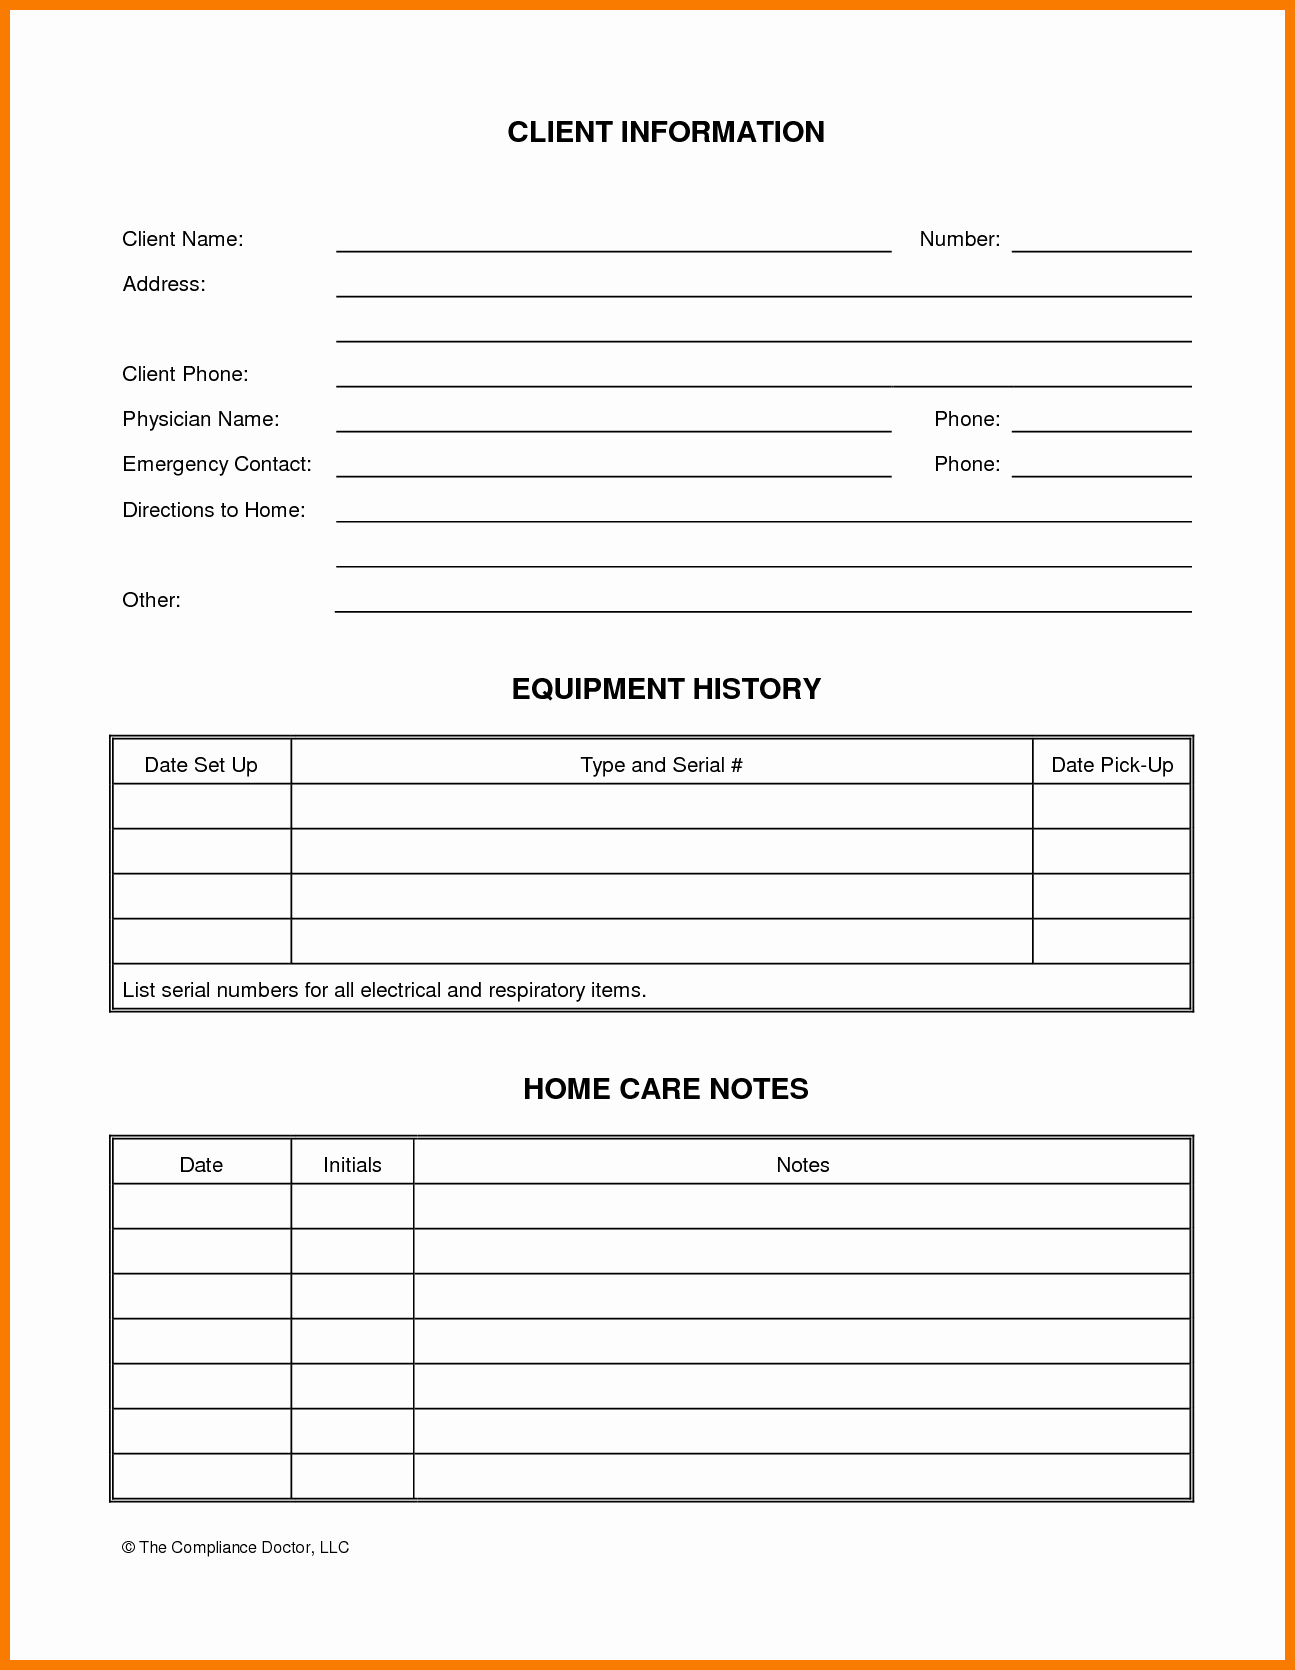 Customer Contact Information form Template Elegant Customer Information form Template